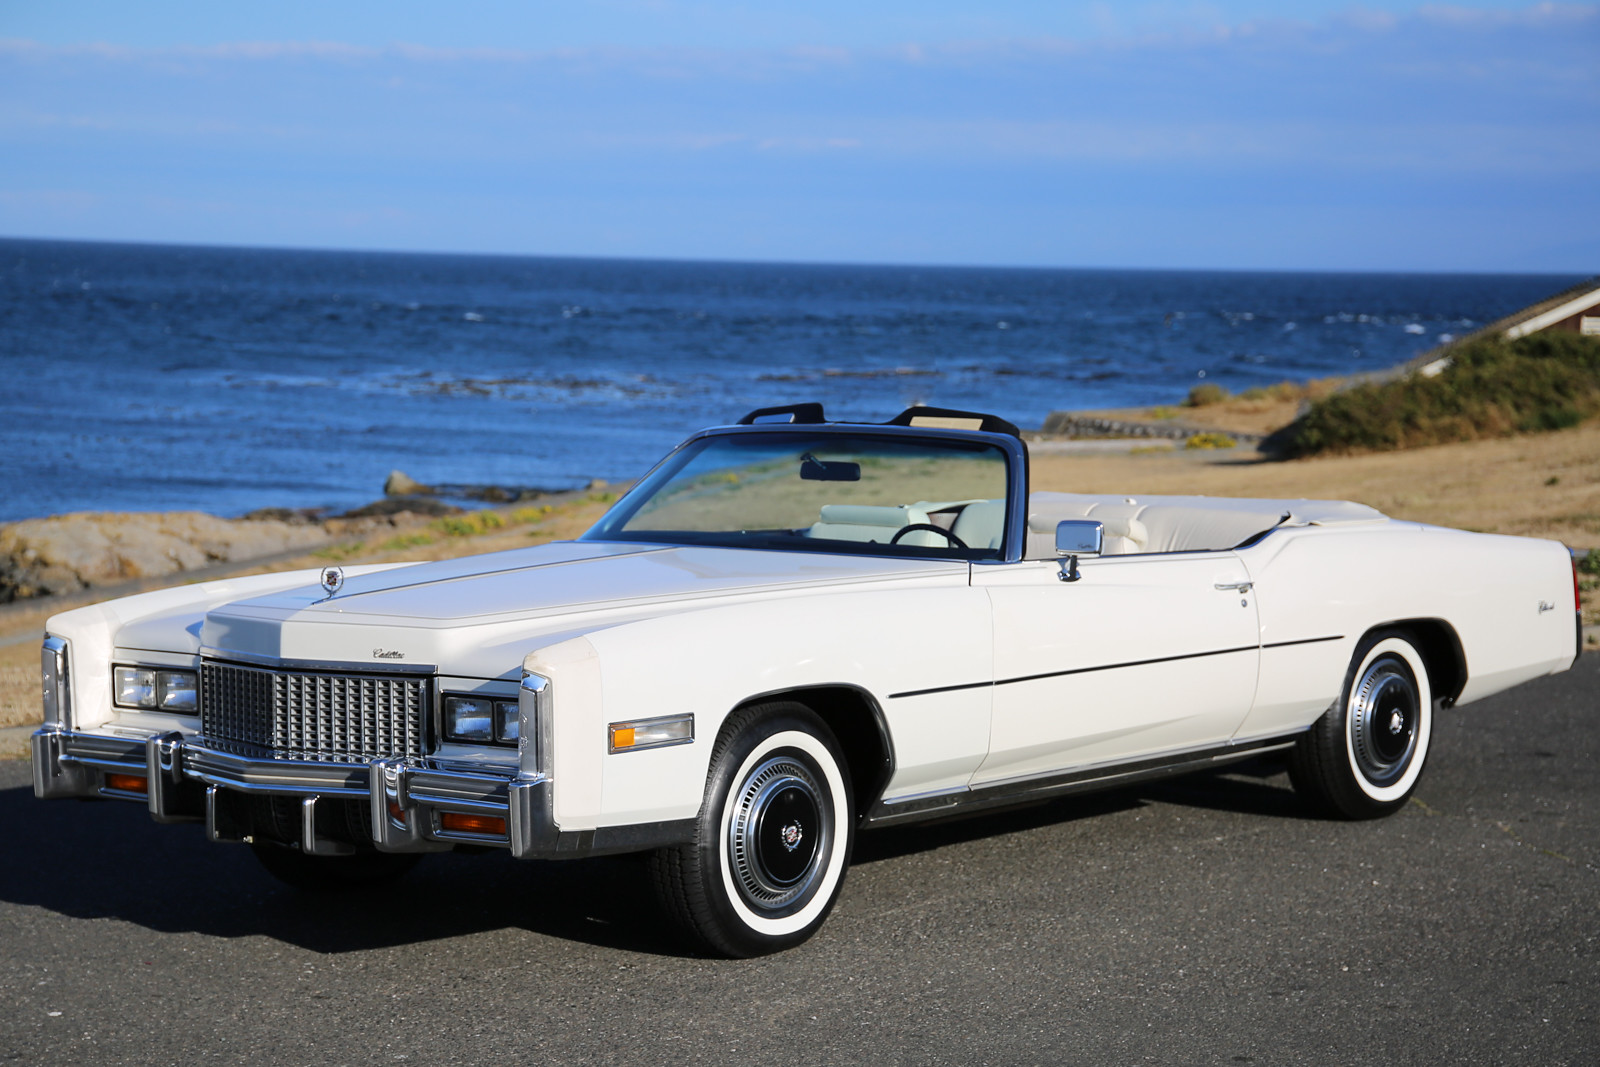 1976 cadillac fleetwood eldorado convertible - silver arrow cars ltd.